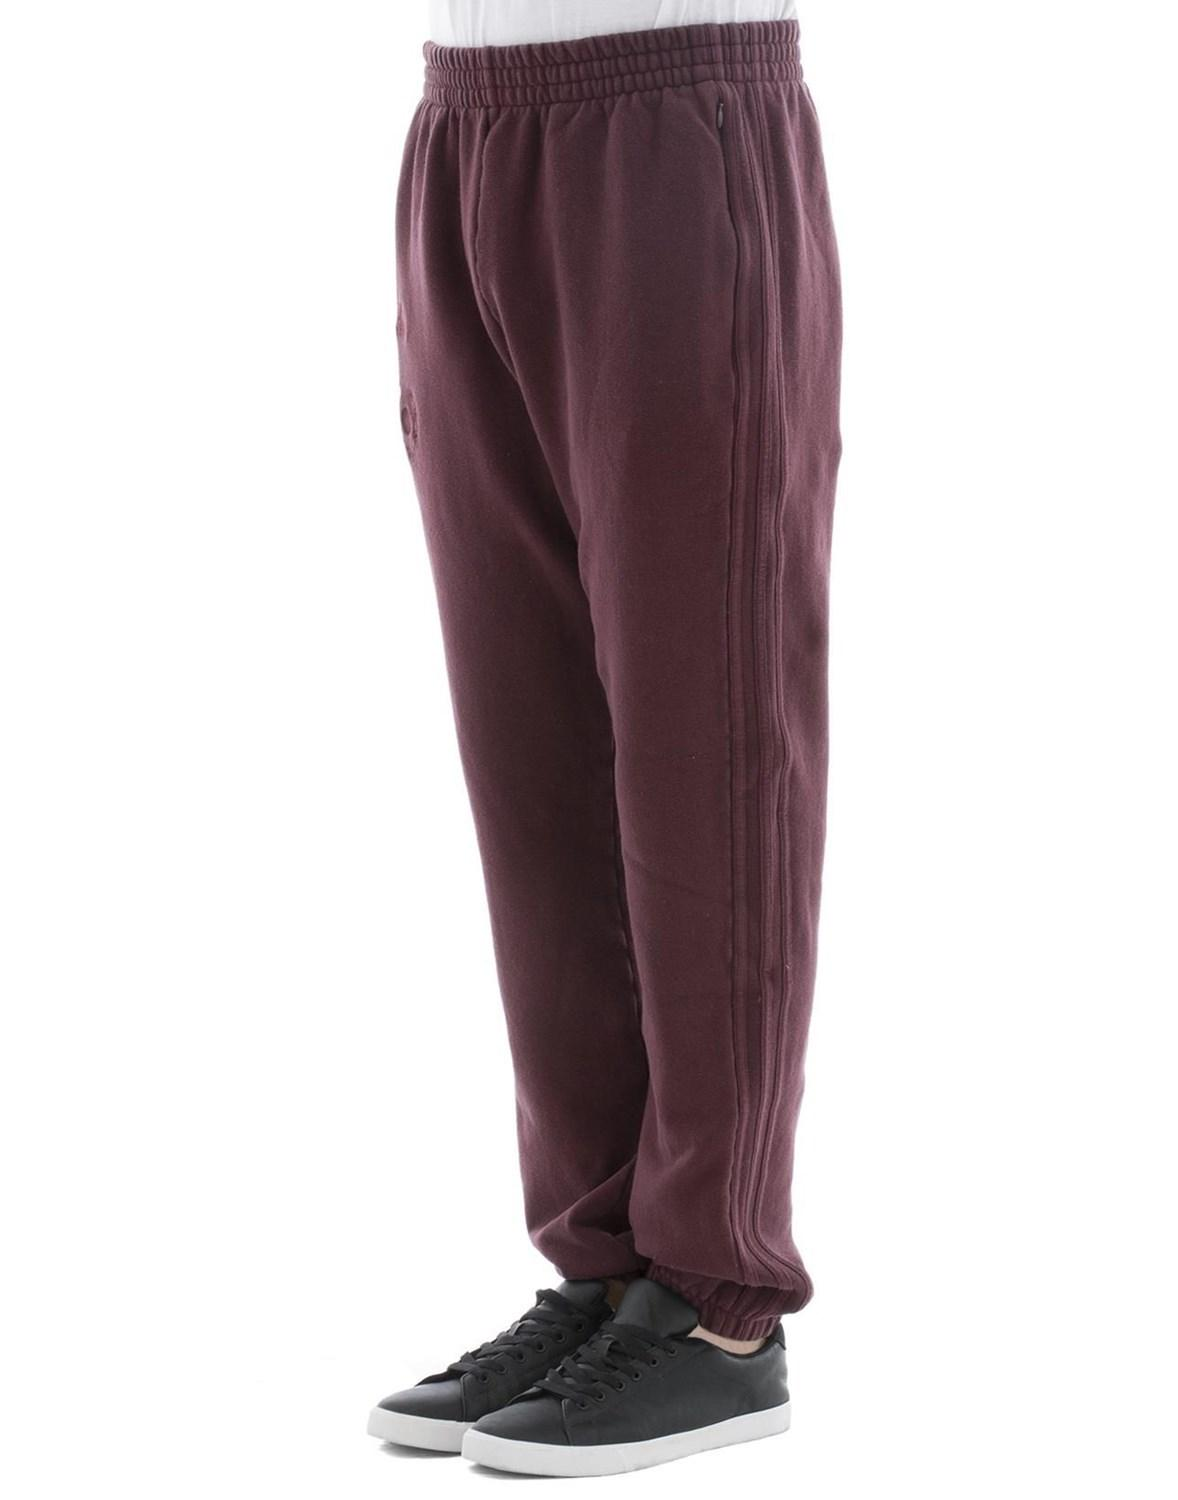 b67966f0 Lyst - Yeezy Men's Kw5u3002oxbloodo Burgundy Cotton JOGGERS in Red for Men  - Save 1%